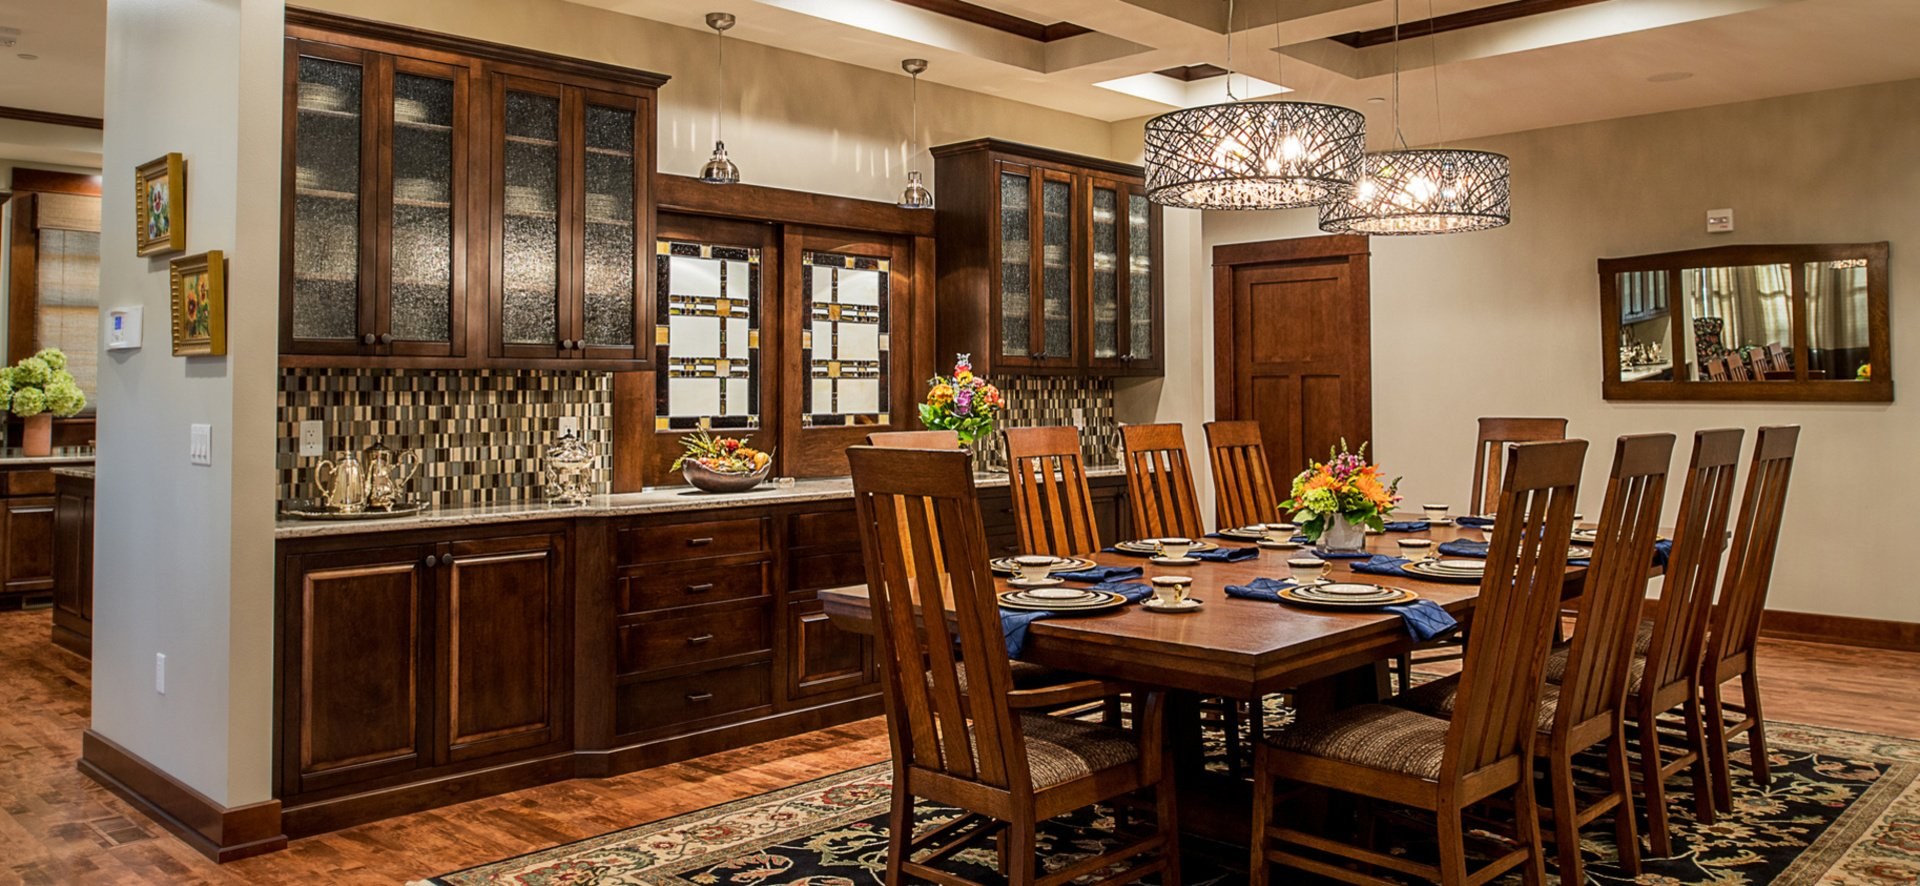 4 Home Page Dinning Room